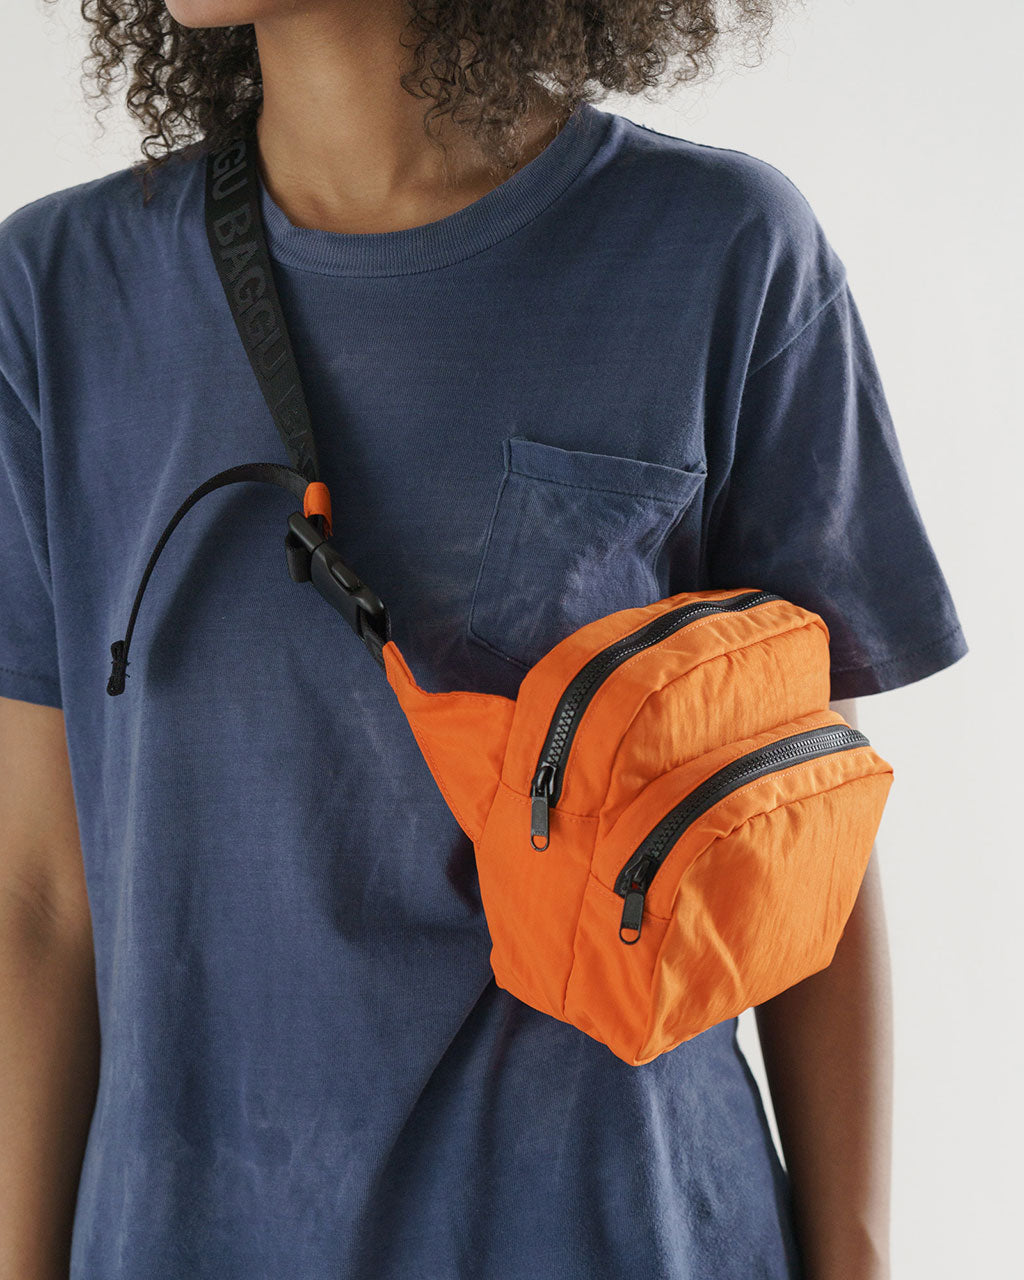 model shown with orange fanny pack as a cross body bag